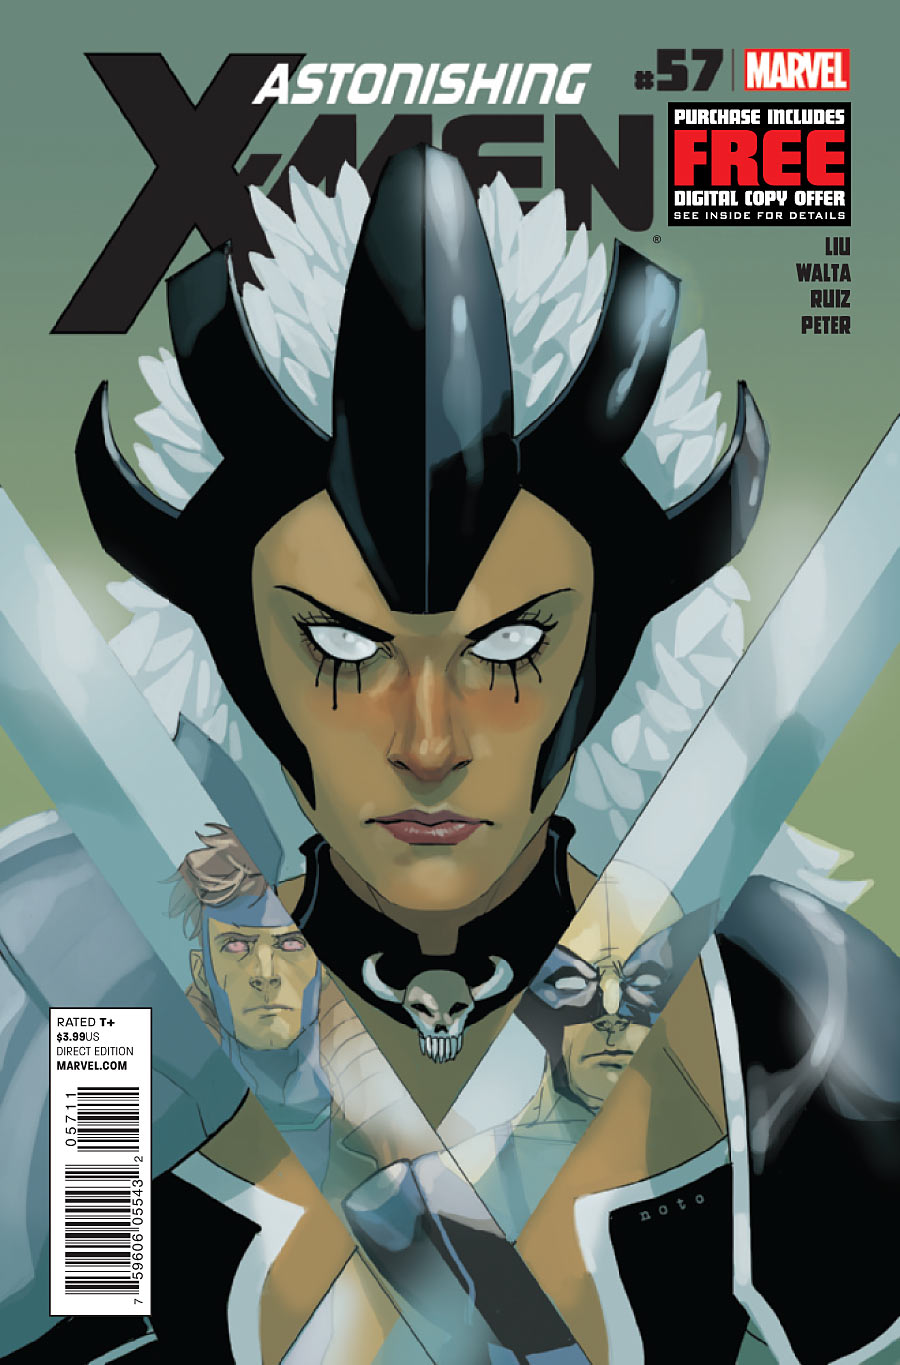 Astonishing X-Men Vol 3 57